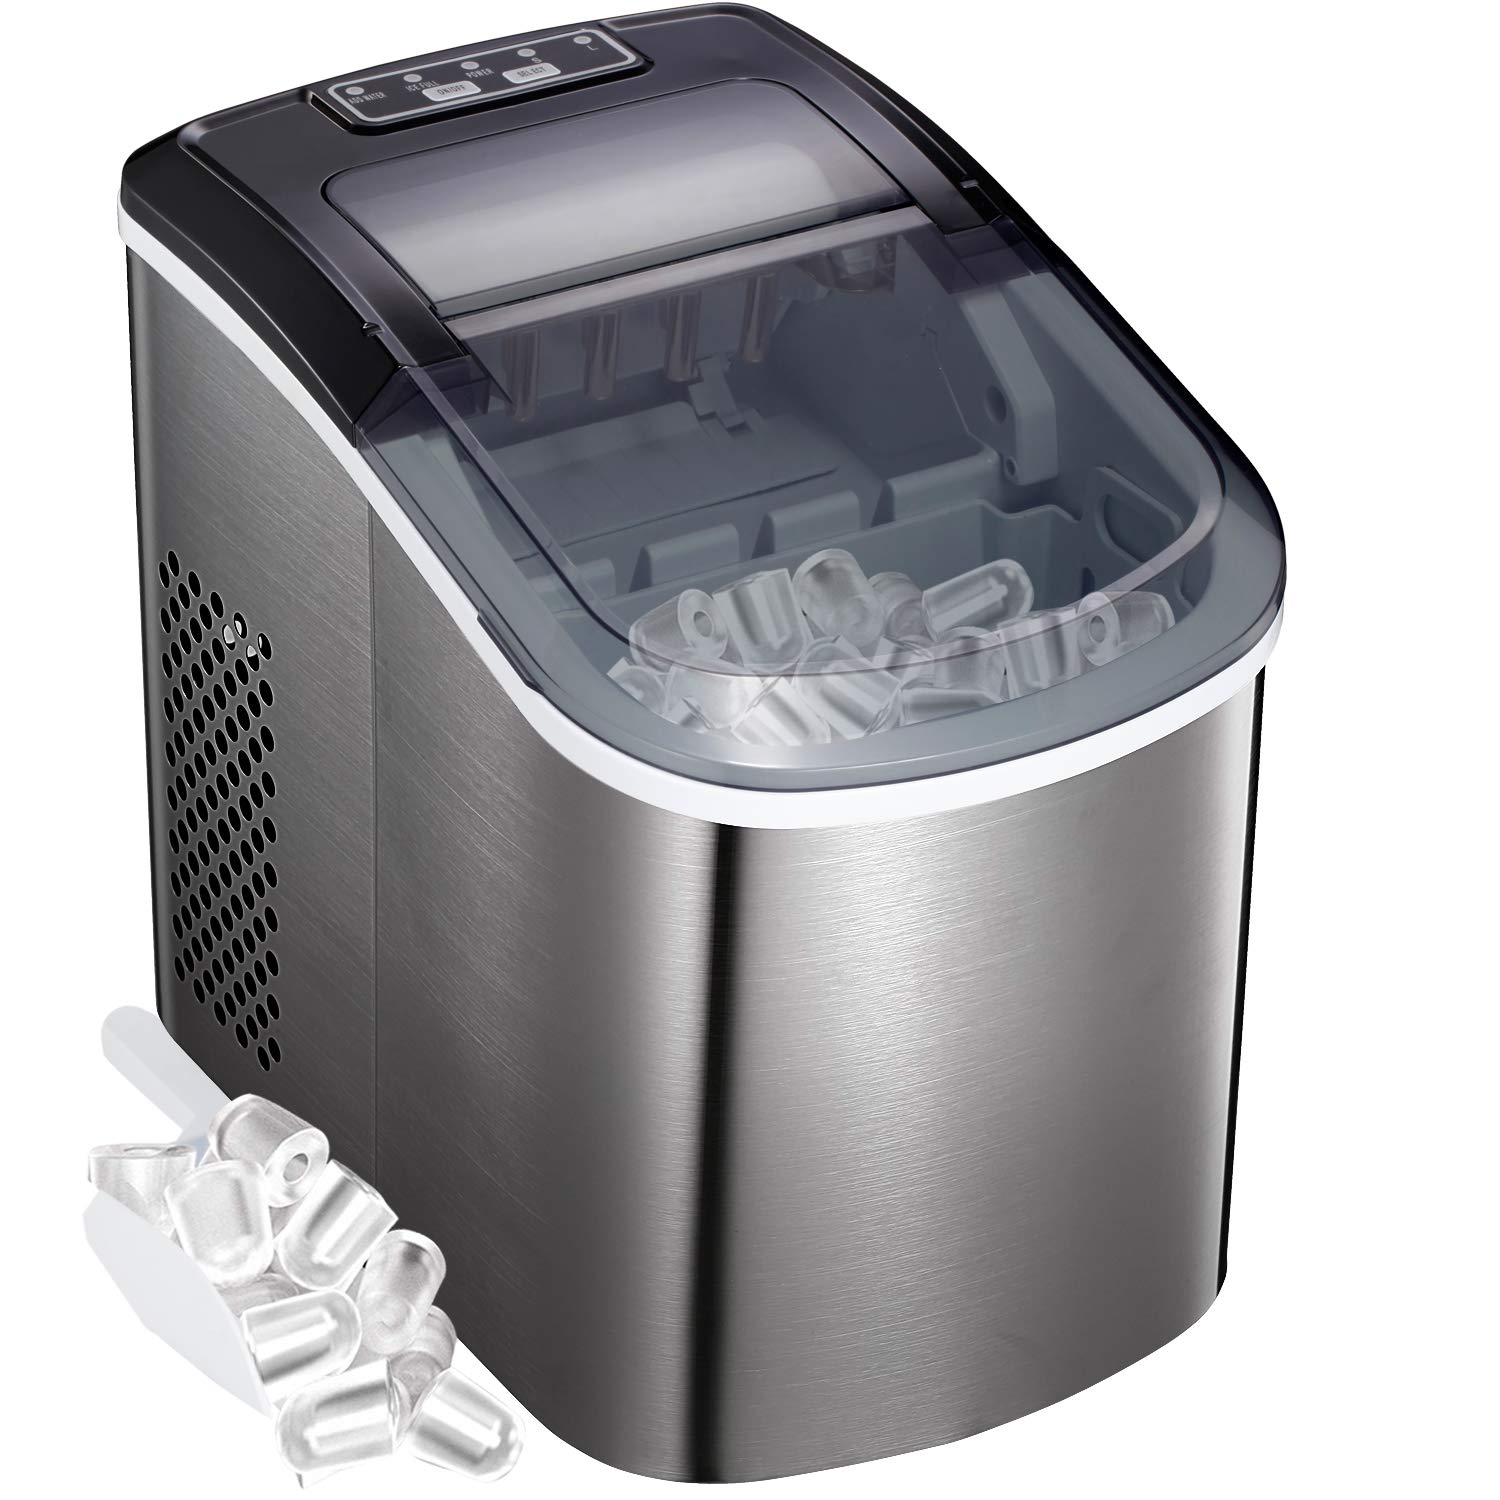 Amazon Com Bossin Countertop Ice Maker Portable Ice Making Machine Bullet Ice Cubes Ready In 6 Mins Makes 26 Lbs Ice In 24 Hrs Perfect For Home Office Bar 2 Qt Water Tank